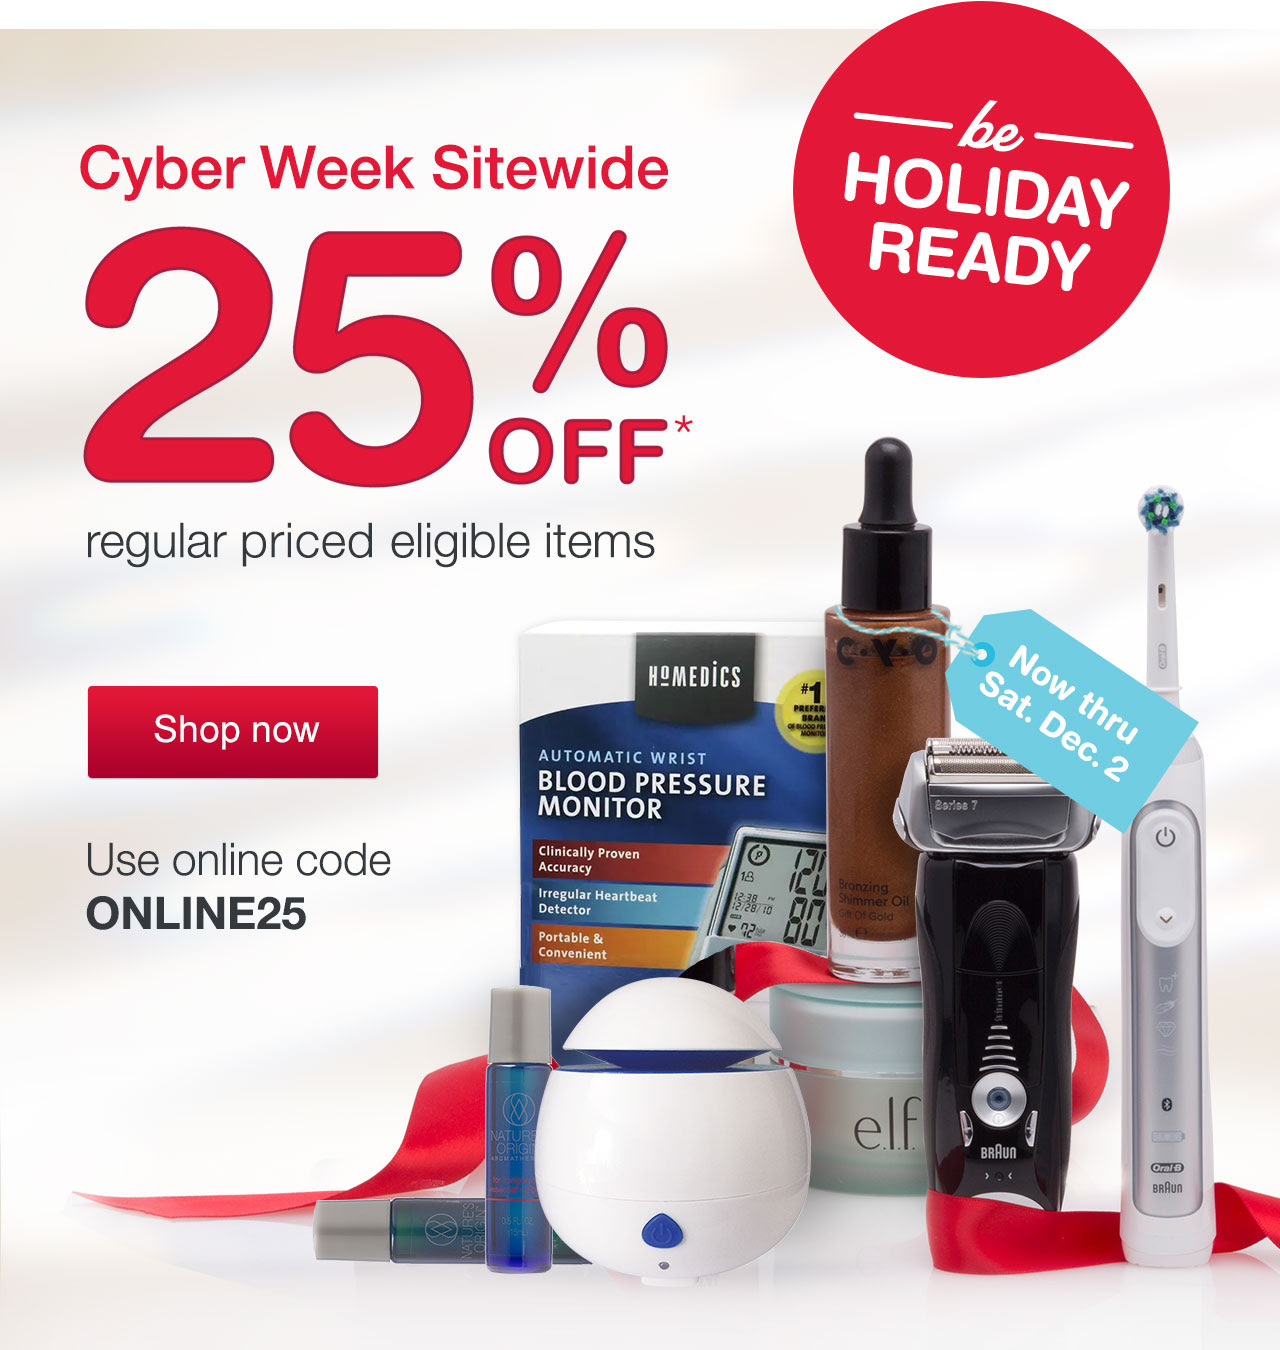 Be holiday ready - Cyber Week Sitewide - 25% OFF* Regular priced eligible items. Now thru Sat. Dec. 2. Shop now. Use online code ONLINE25